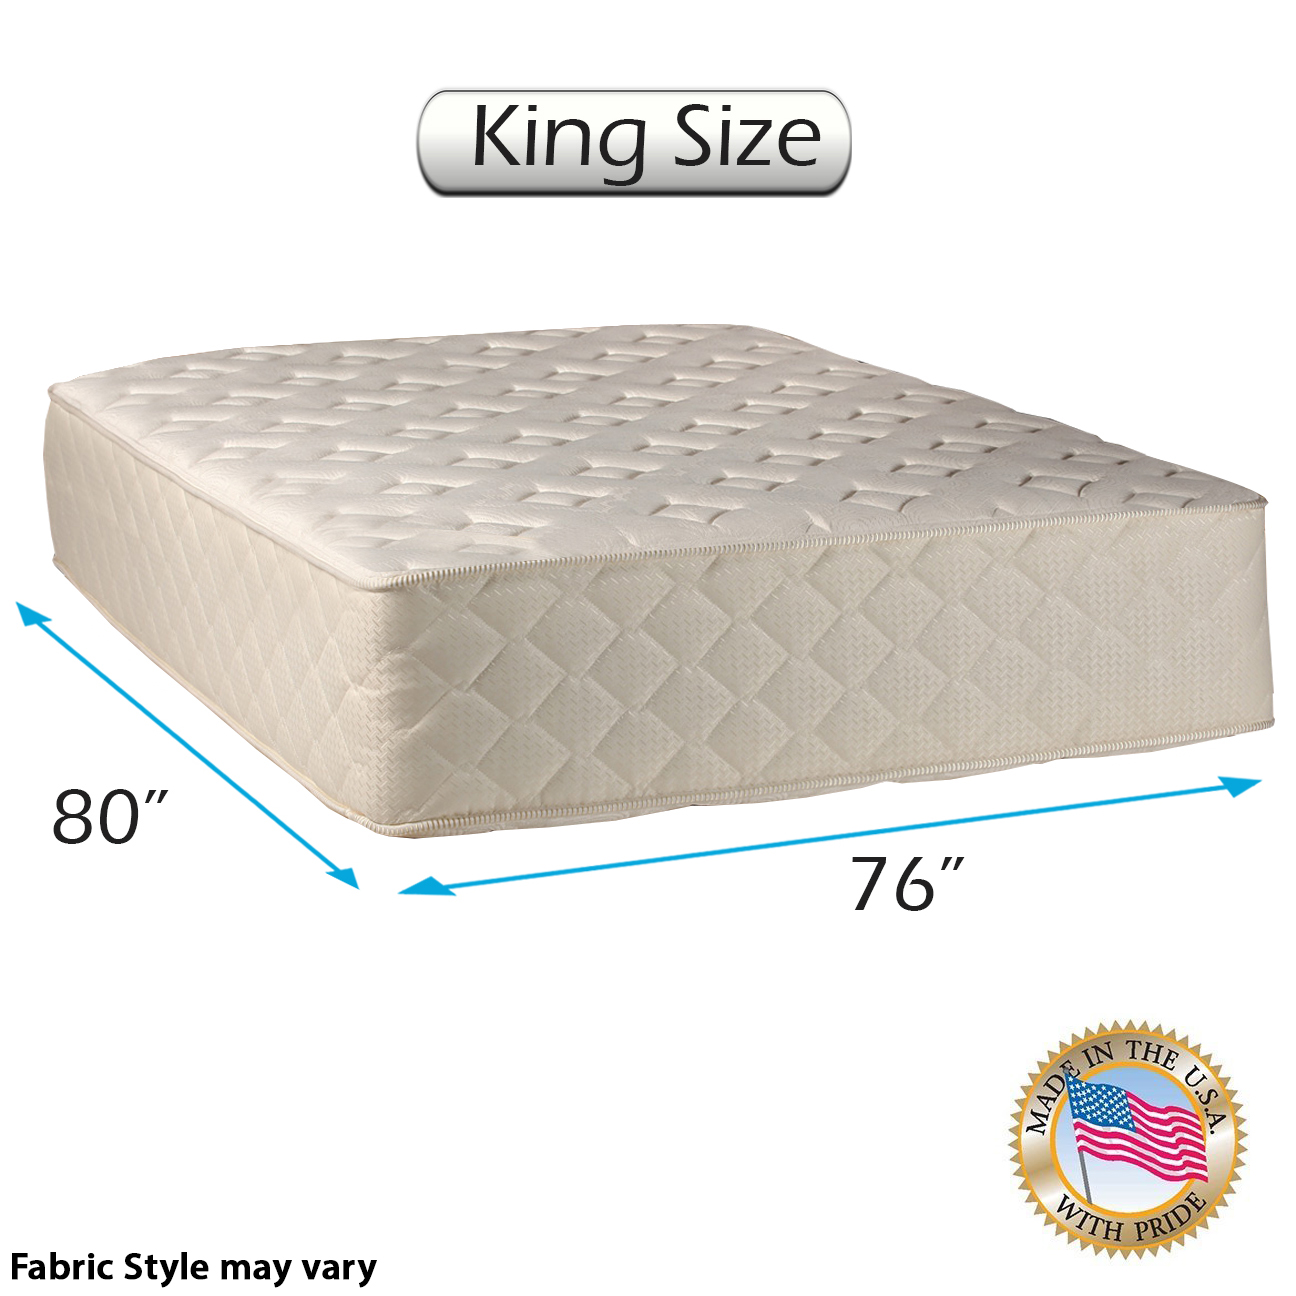 "Highlight Luxury Firm King Size (76""x80""x14"") Mattress Only - Fully Assembled - Spinal Back Support, Innerspring Coils, Premium edge guards, Longlasting Comfort - By Dream Solutions USA"